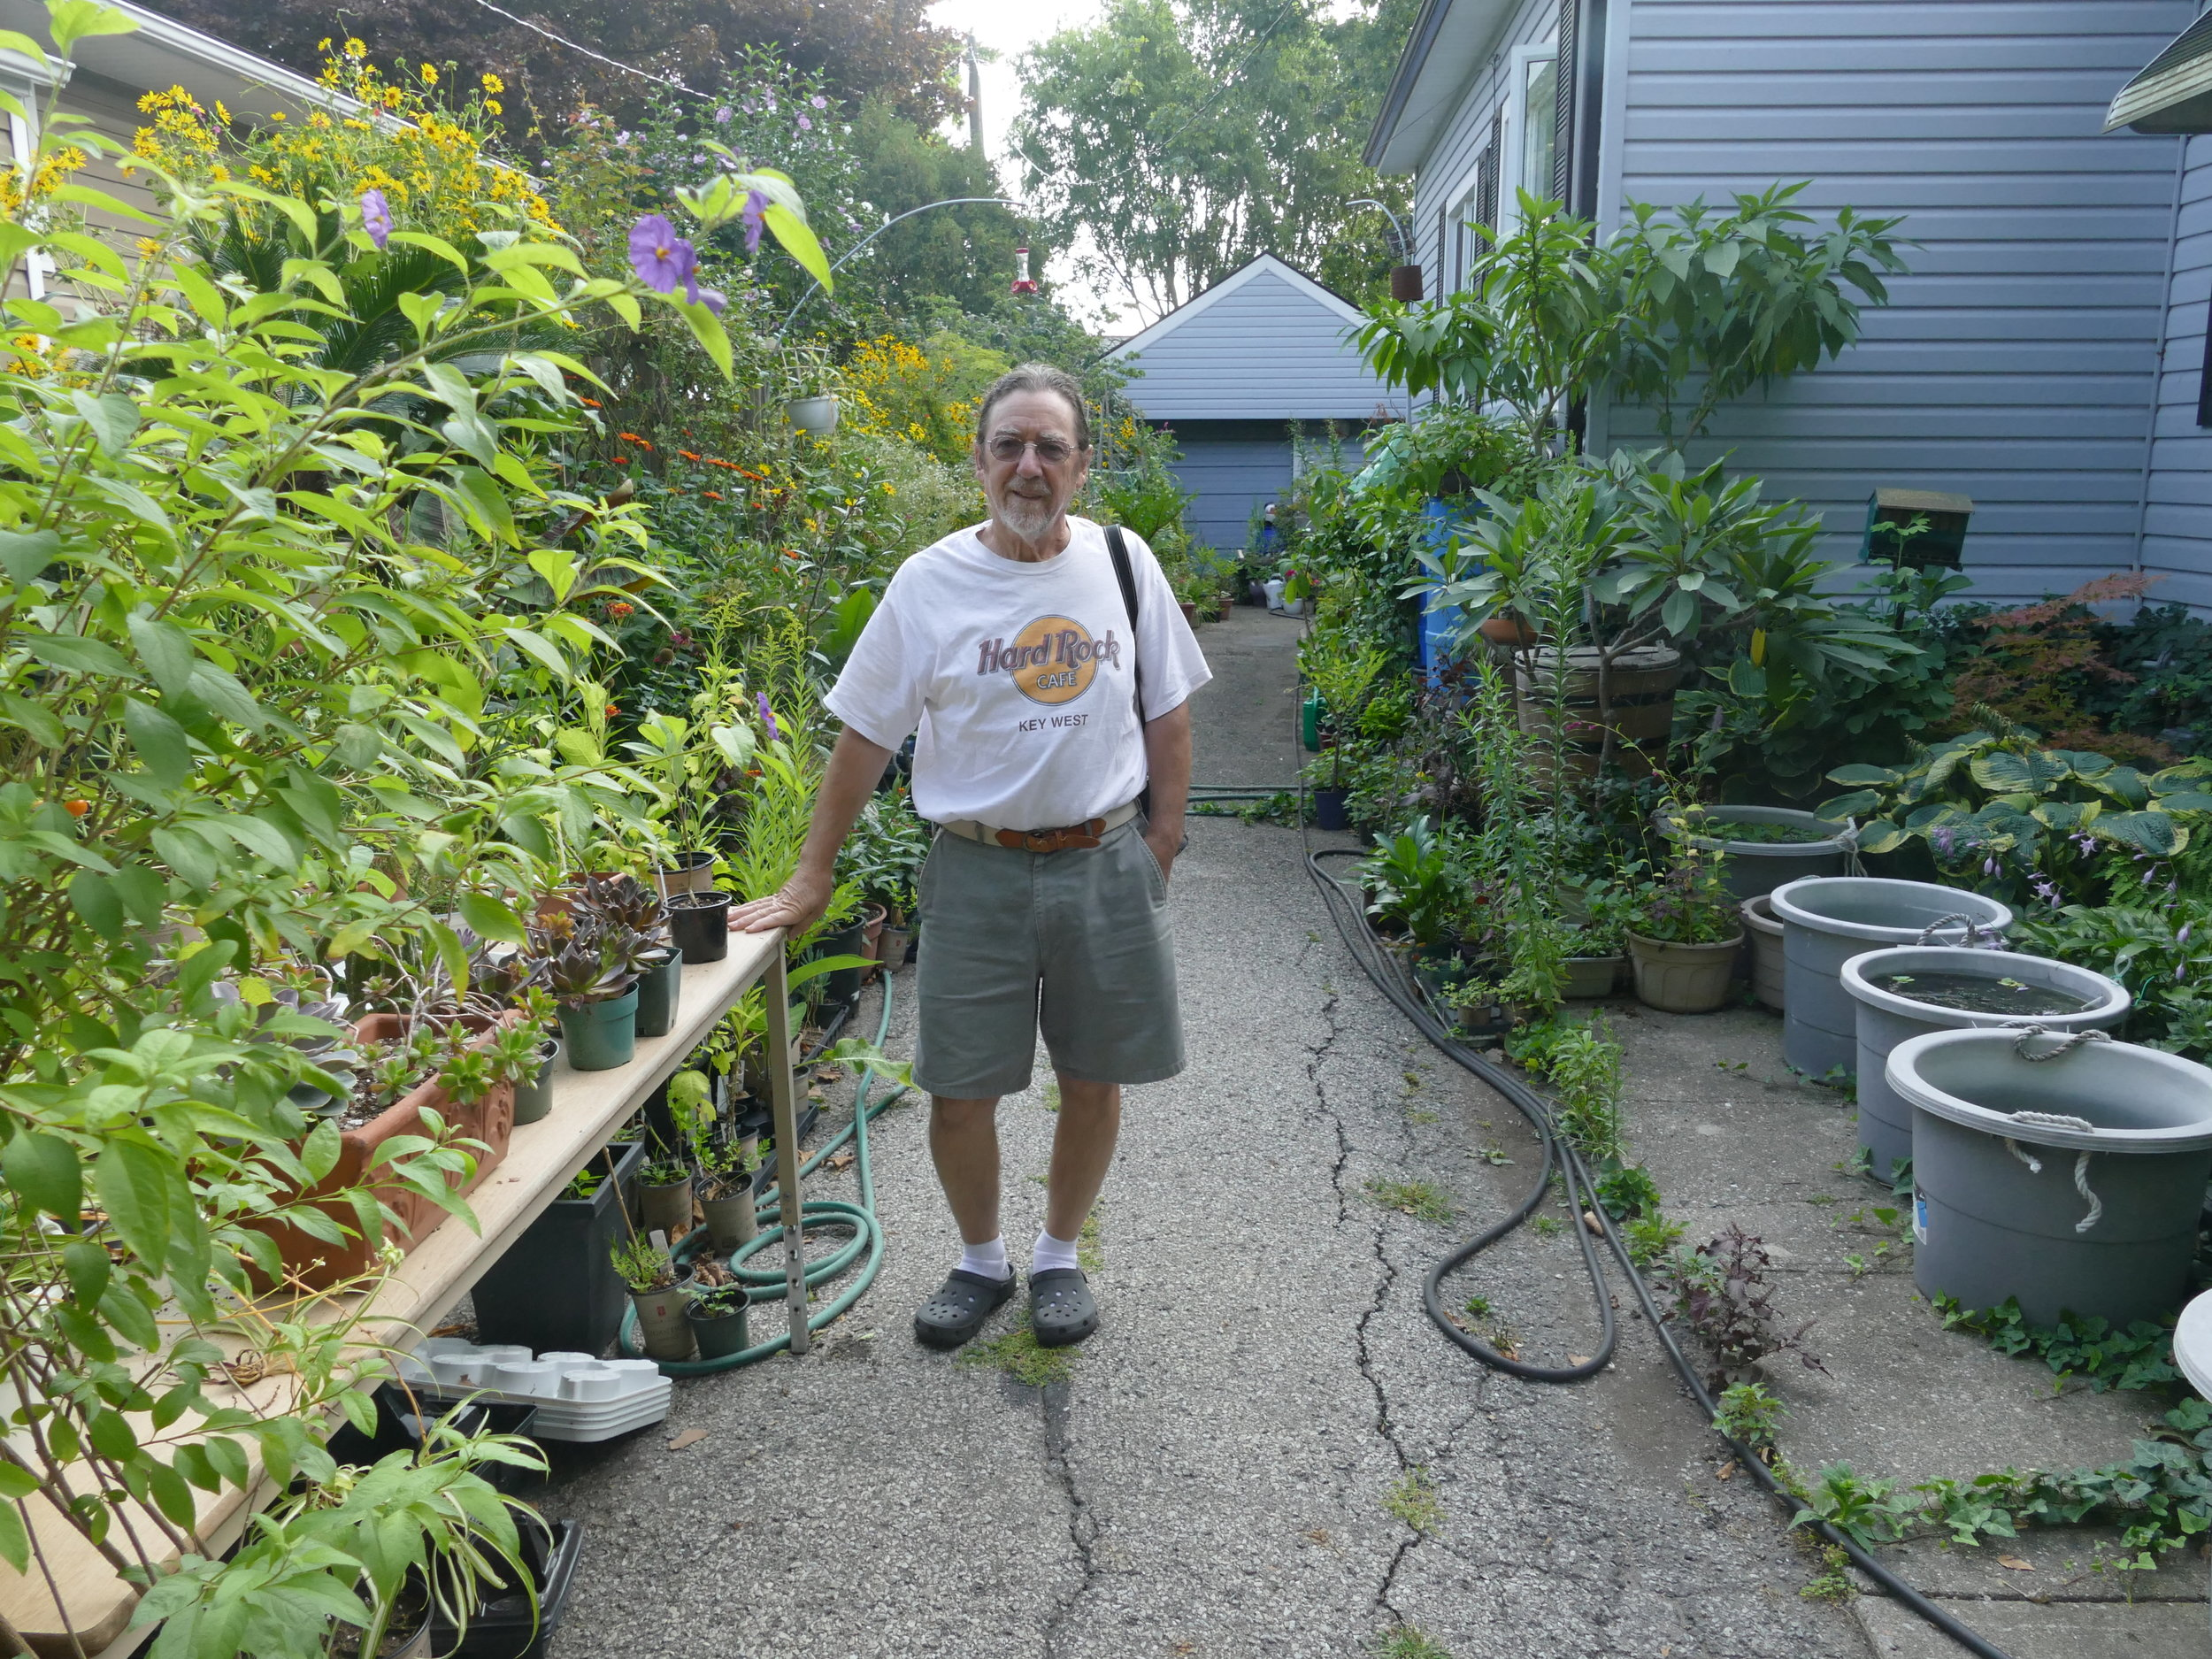 Louie is a great example of what our yards could look like. Even his driveway was habitat for so many critters, including frogs!!!